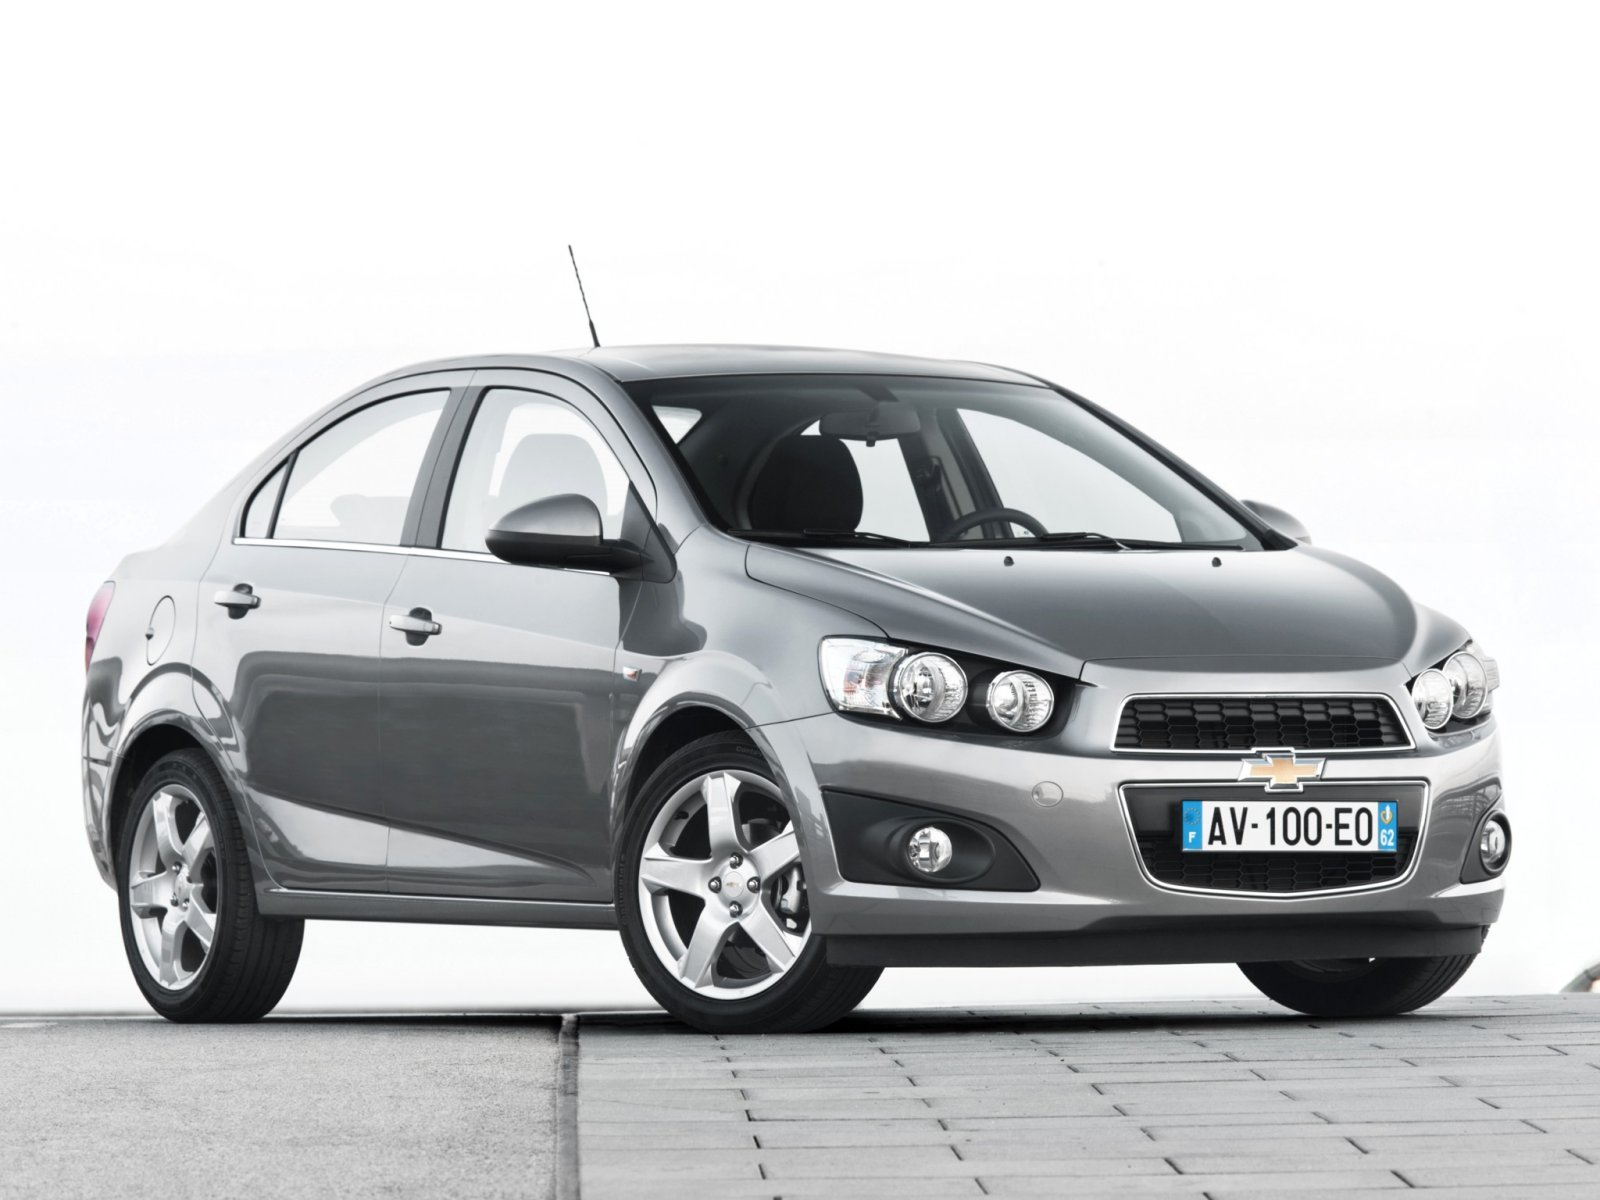 chevrolet aveo sedan 2014 images #14